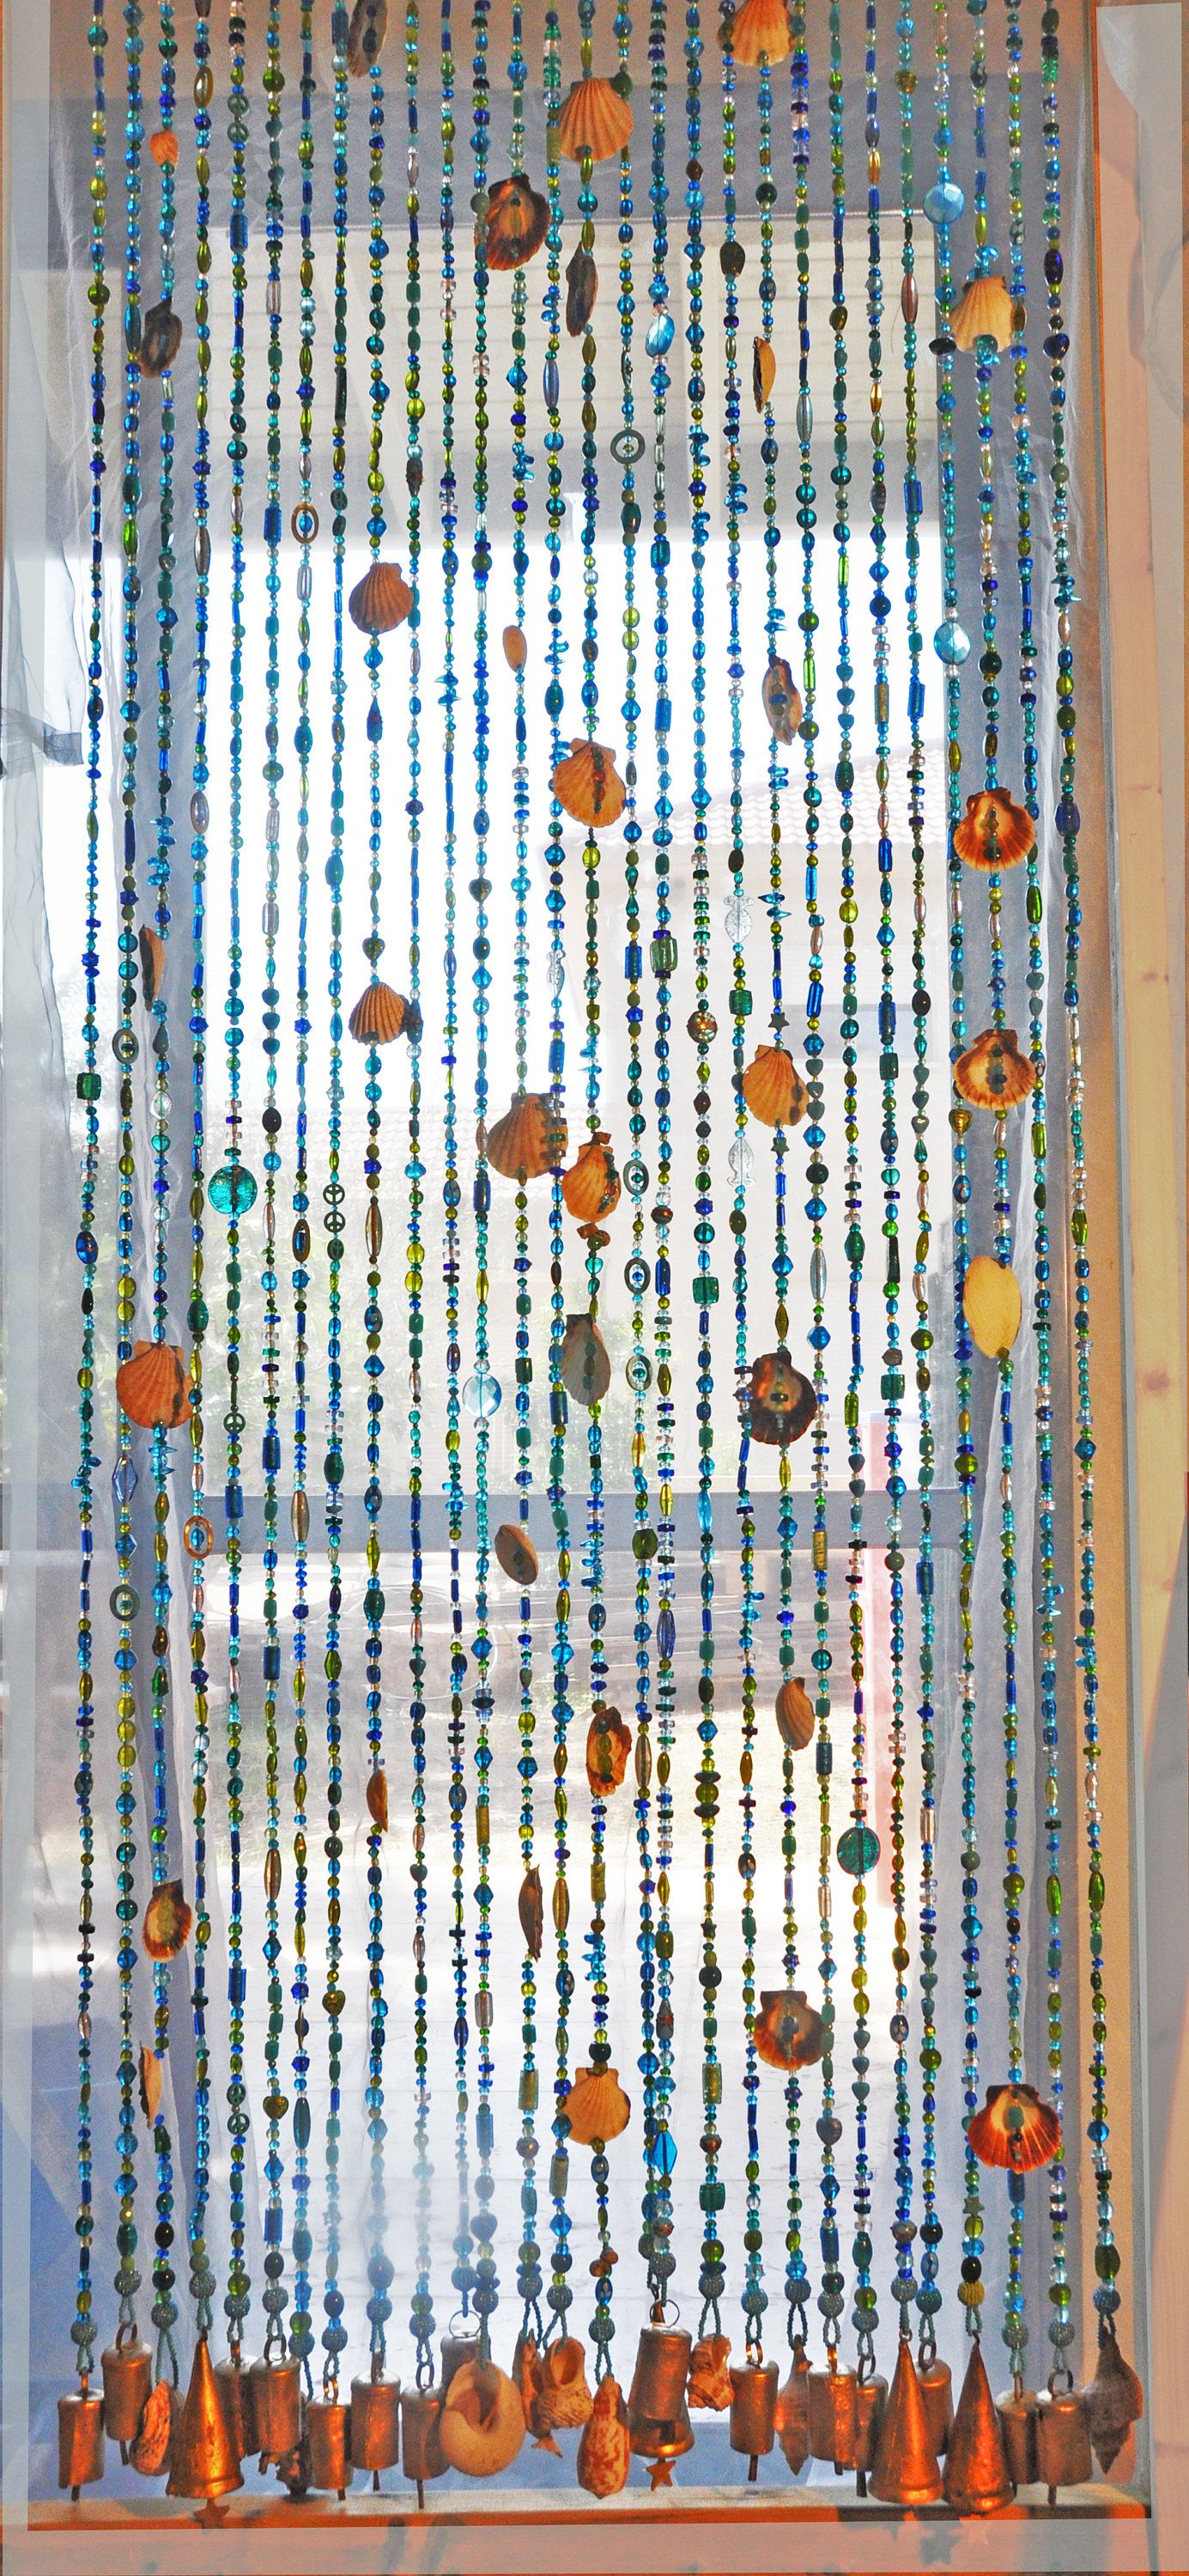 Crystal Bead Curtains For Doors Door Beaded Curtains Door Beads With Sea Shells